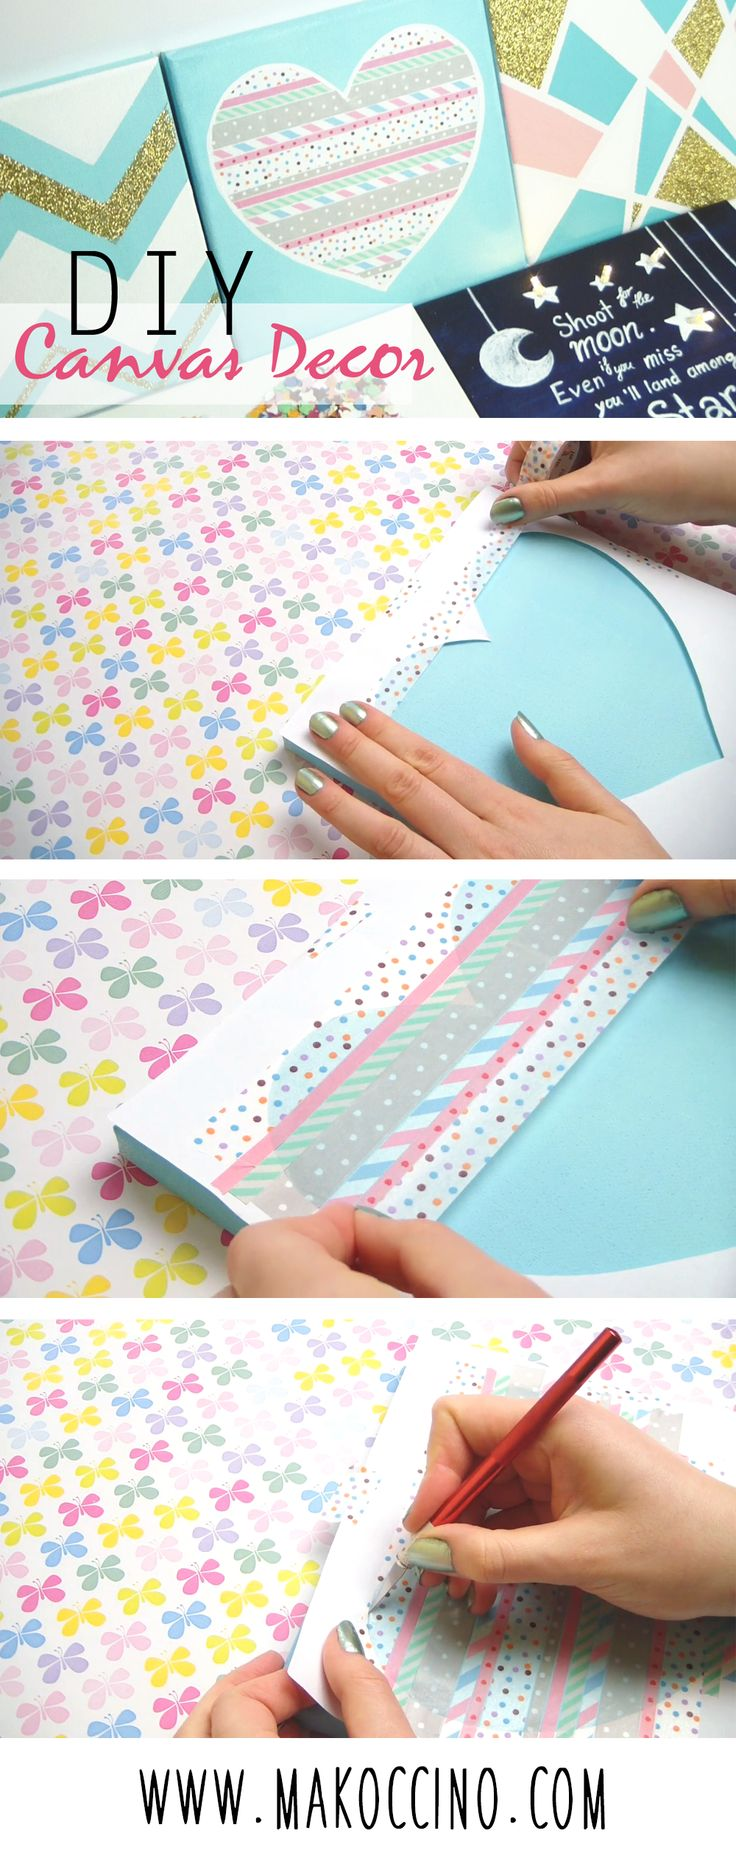 DIY 5 different ideas what you can do with a plain canvas. They are all easy to make and the result looks very cute and it's perfect for decorating your room or as a personal gift!